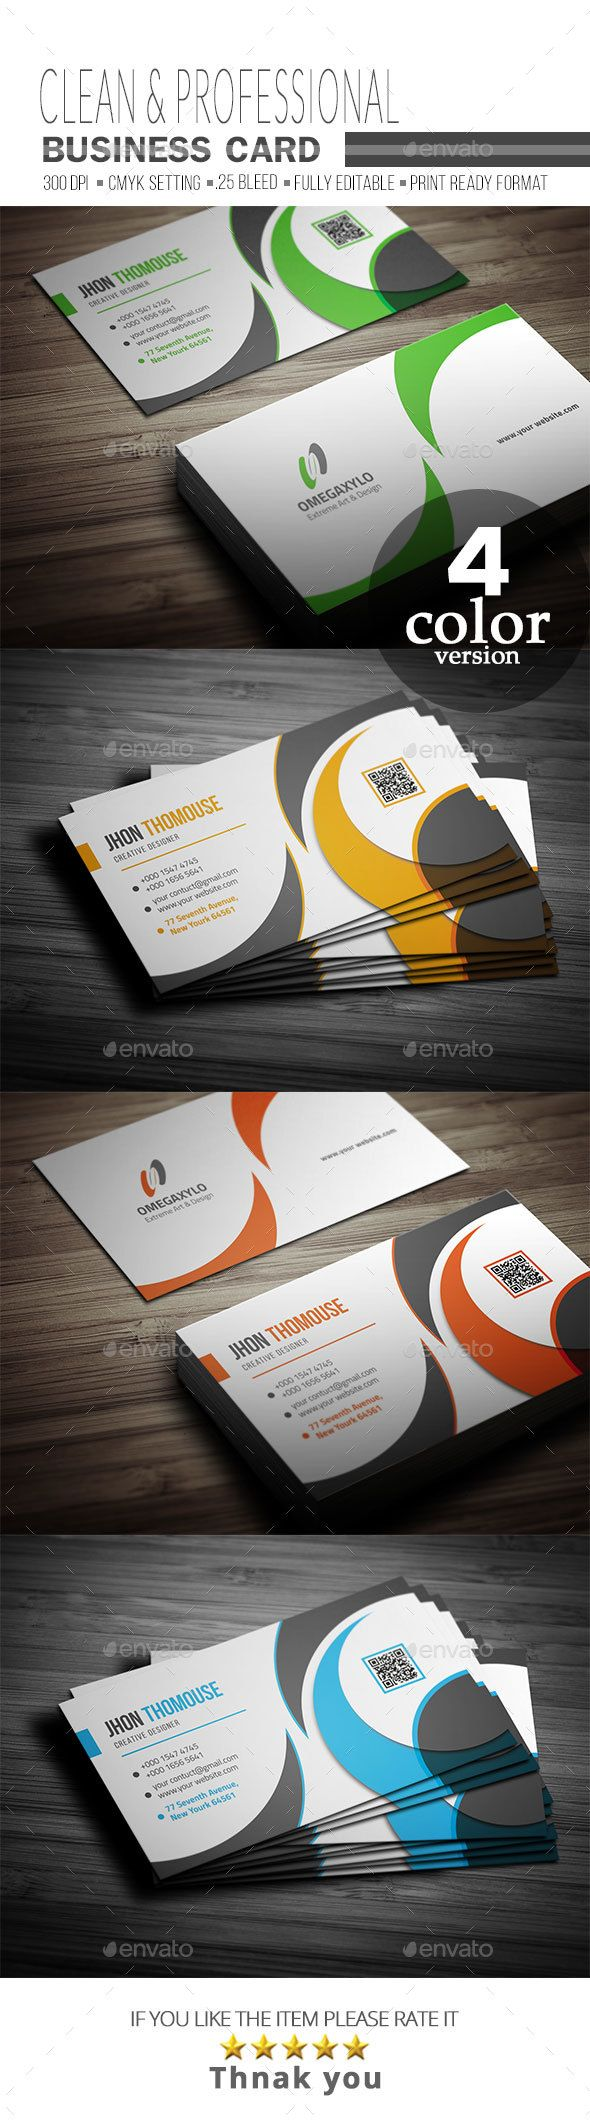 Business Card Template Psd Cool Business Cards Business Cards Business Card Template Psd